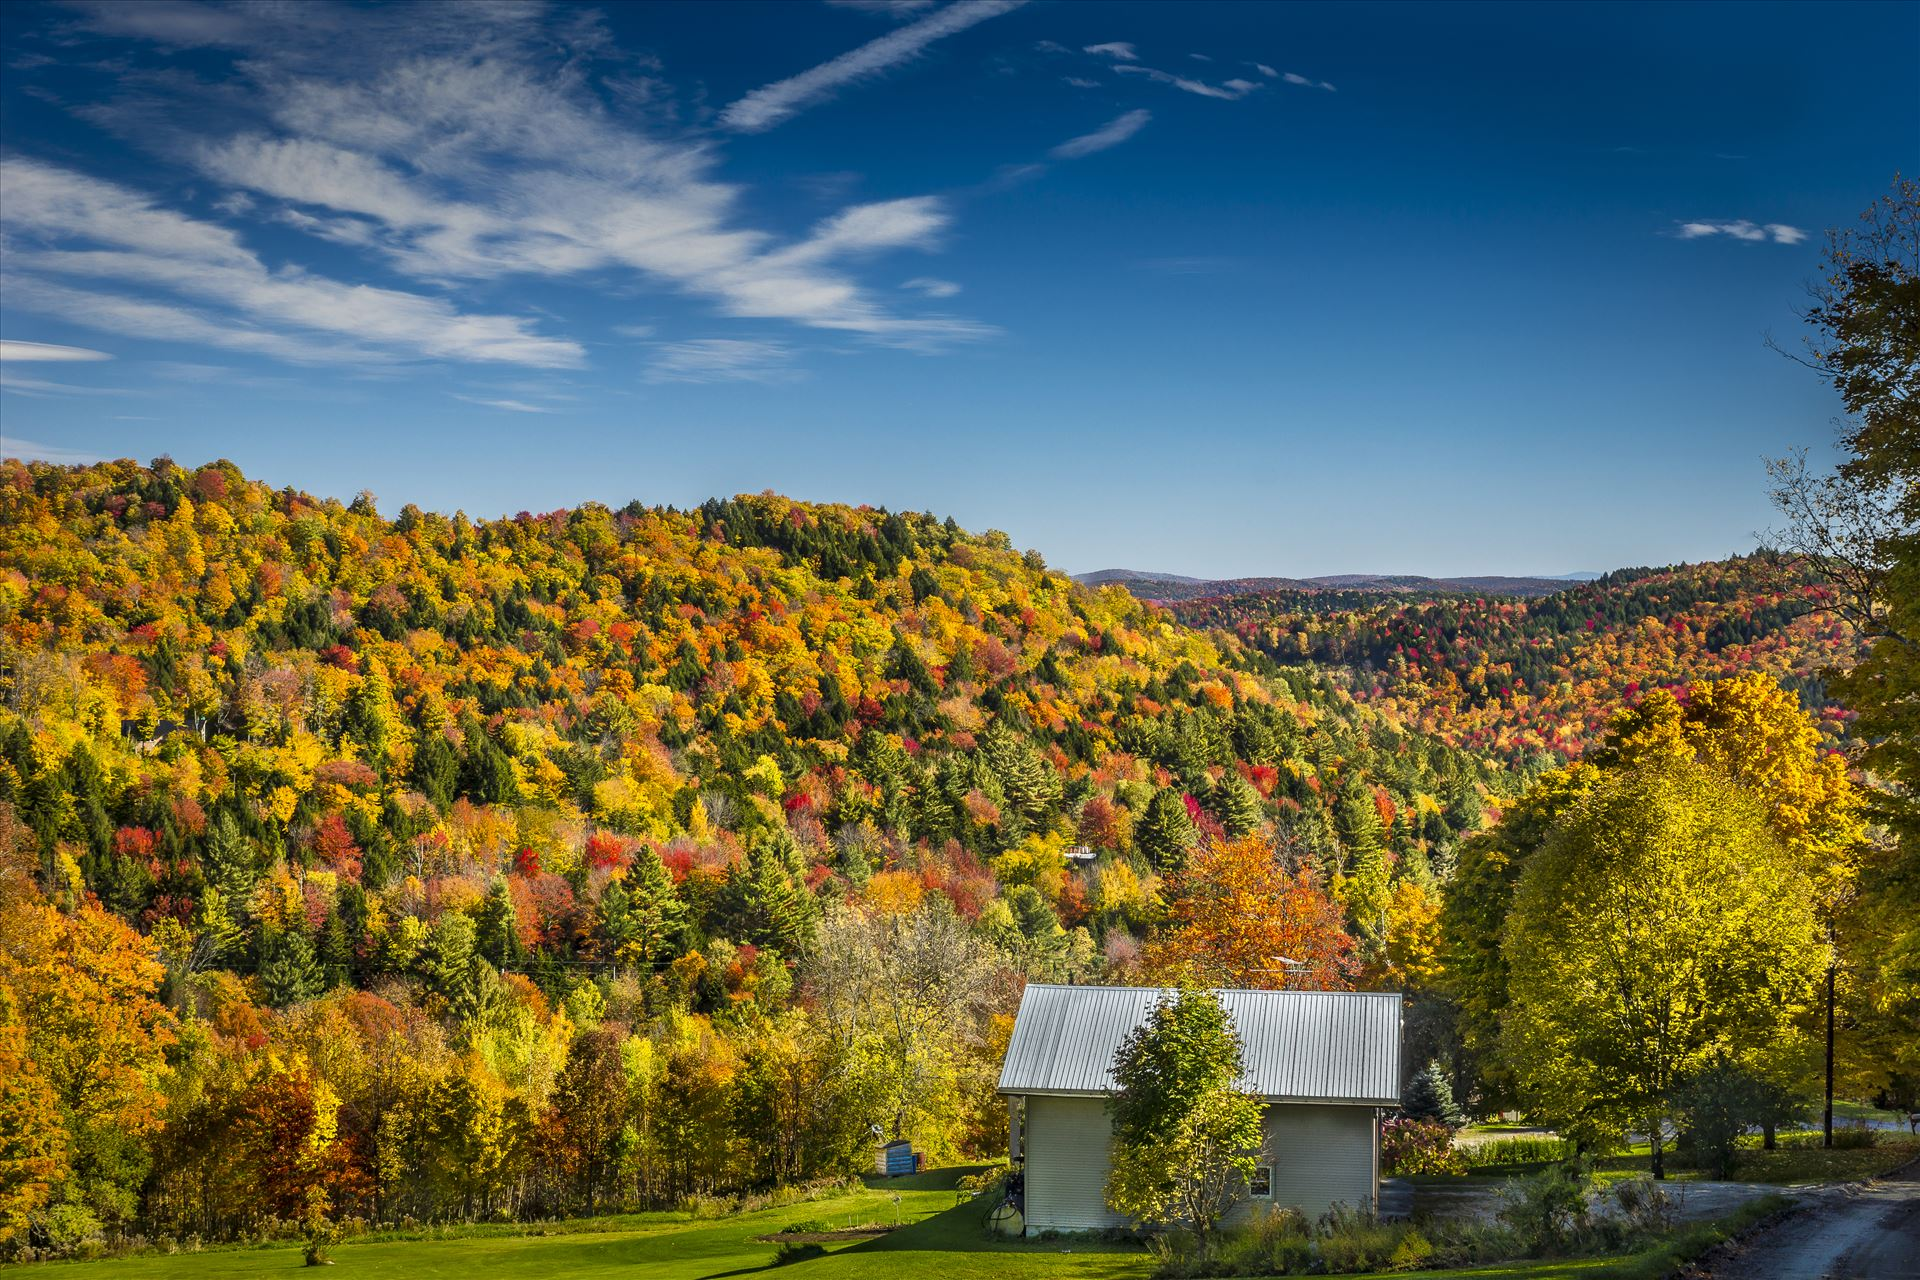 Bethel, Vermont - Scenic Foliage in Bethel, Vermont by Buckmaster